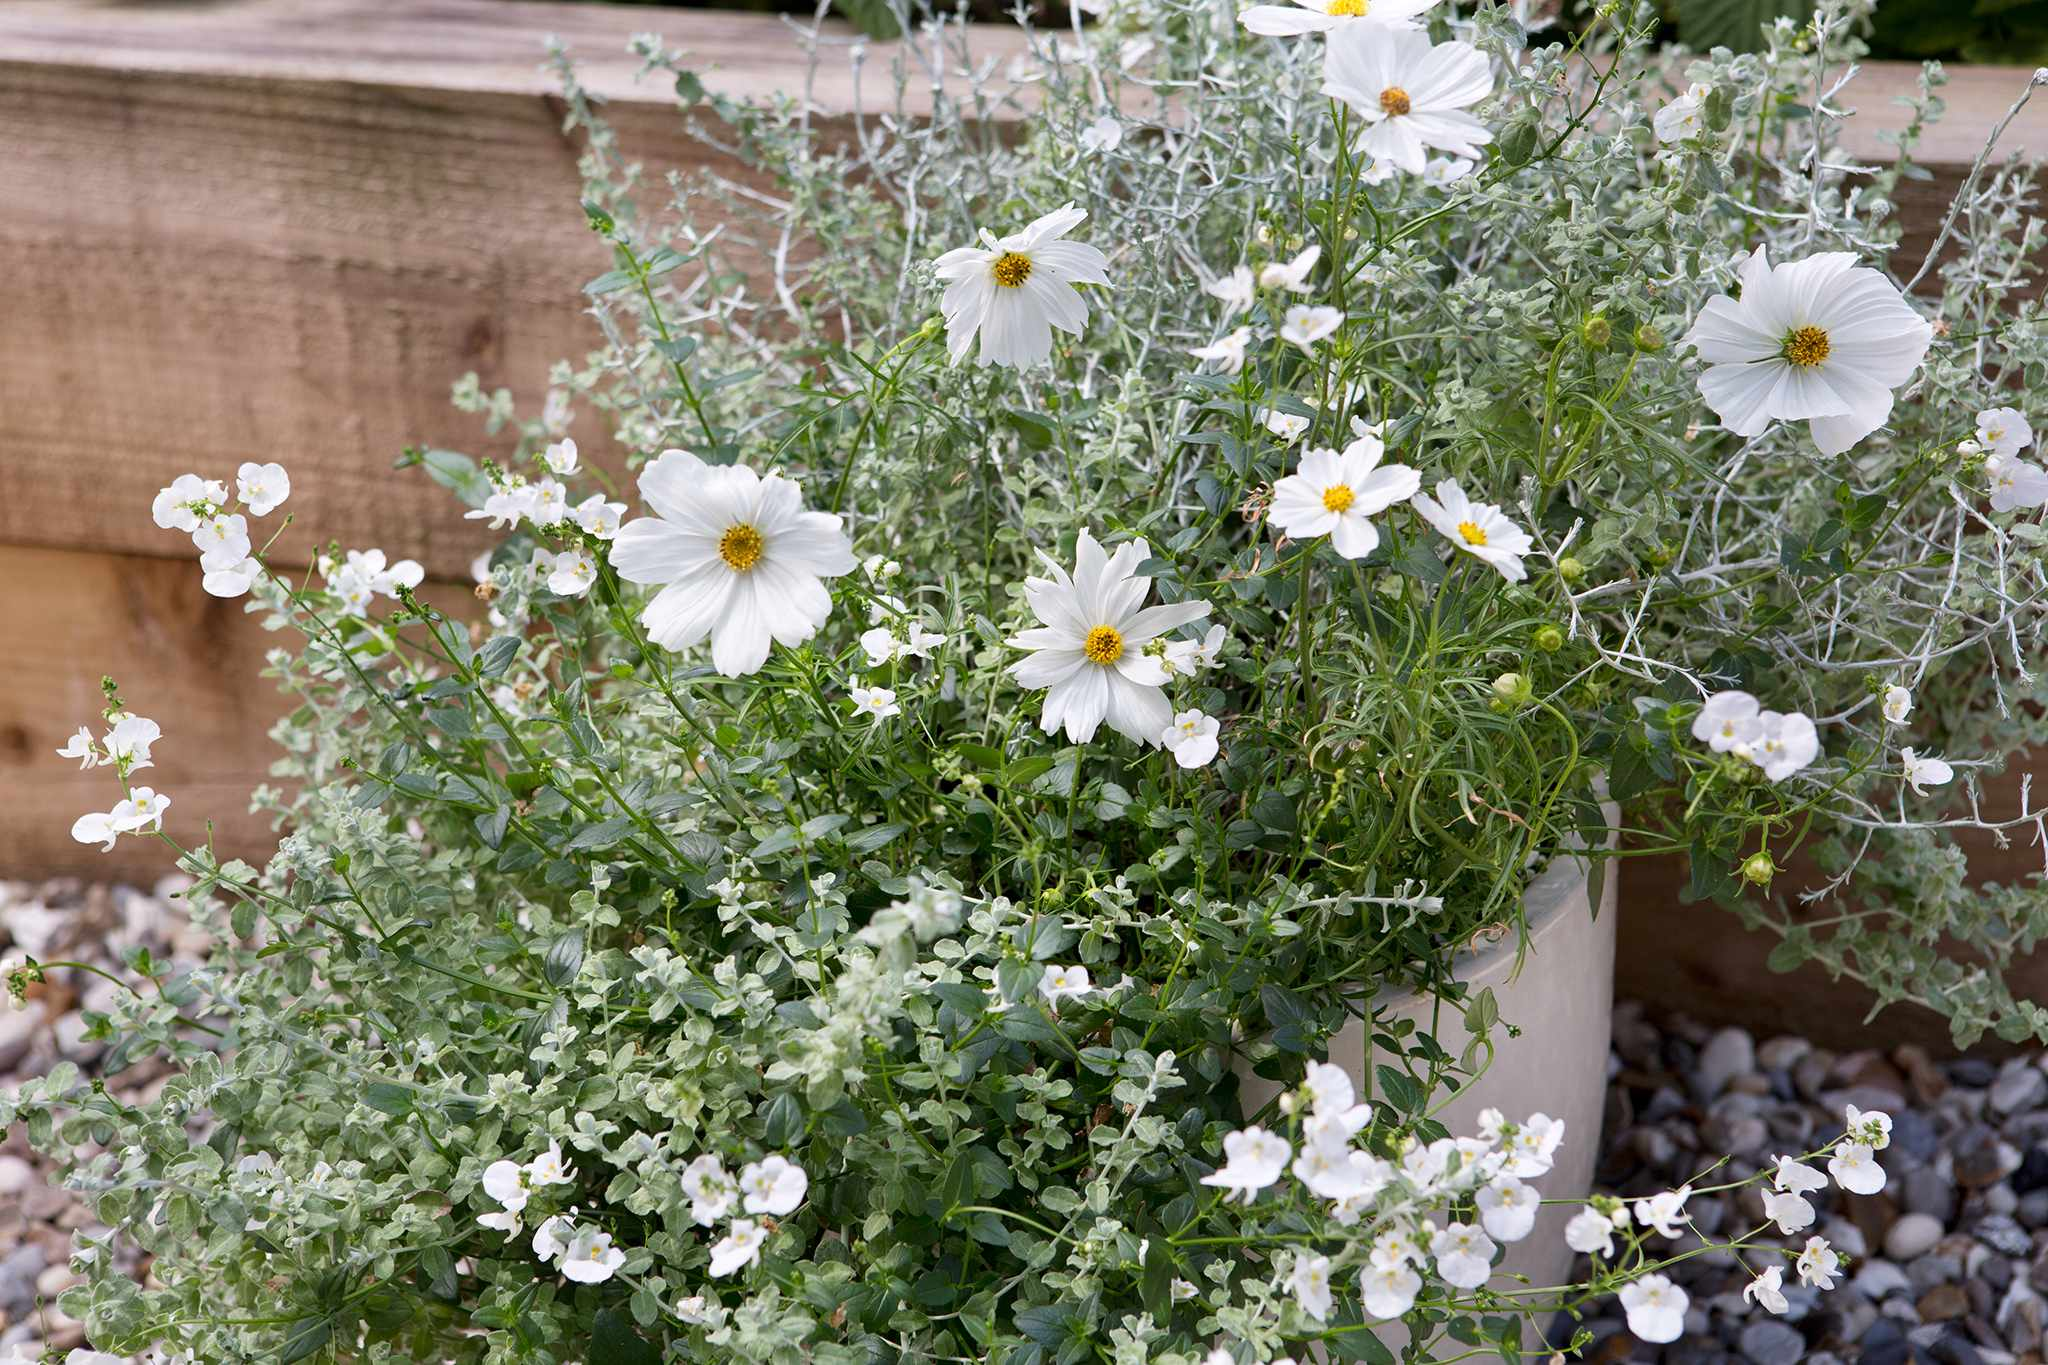 White cosmos growing with helichrysum, diascia and calocephalus